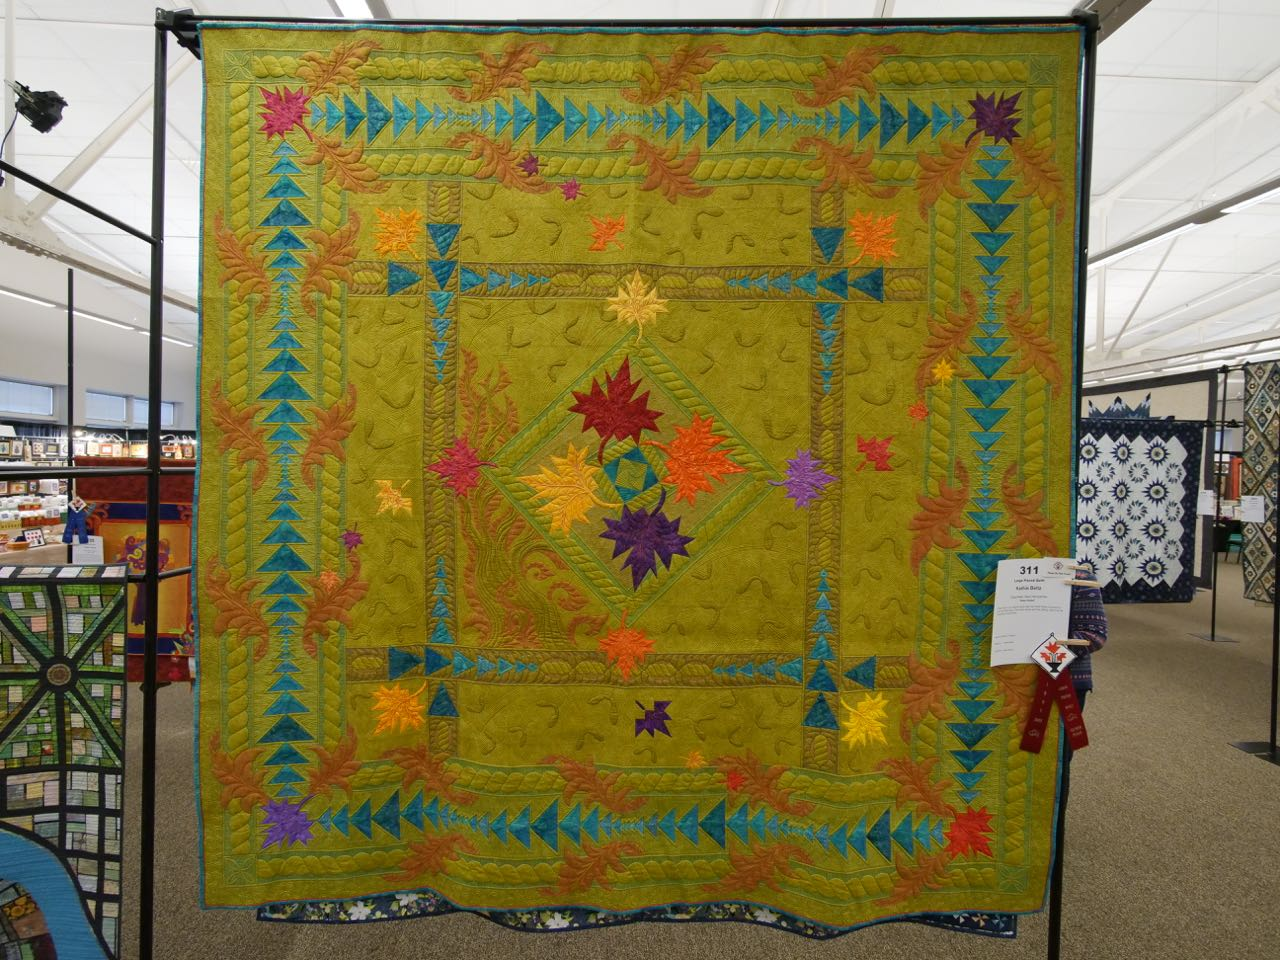 Free Fallin' - 2nd Place, Large Pieced Quilts